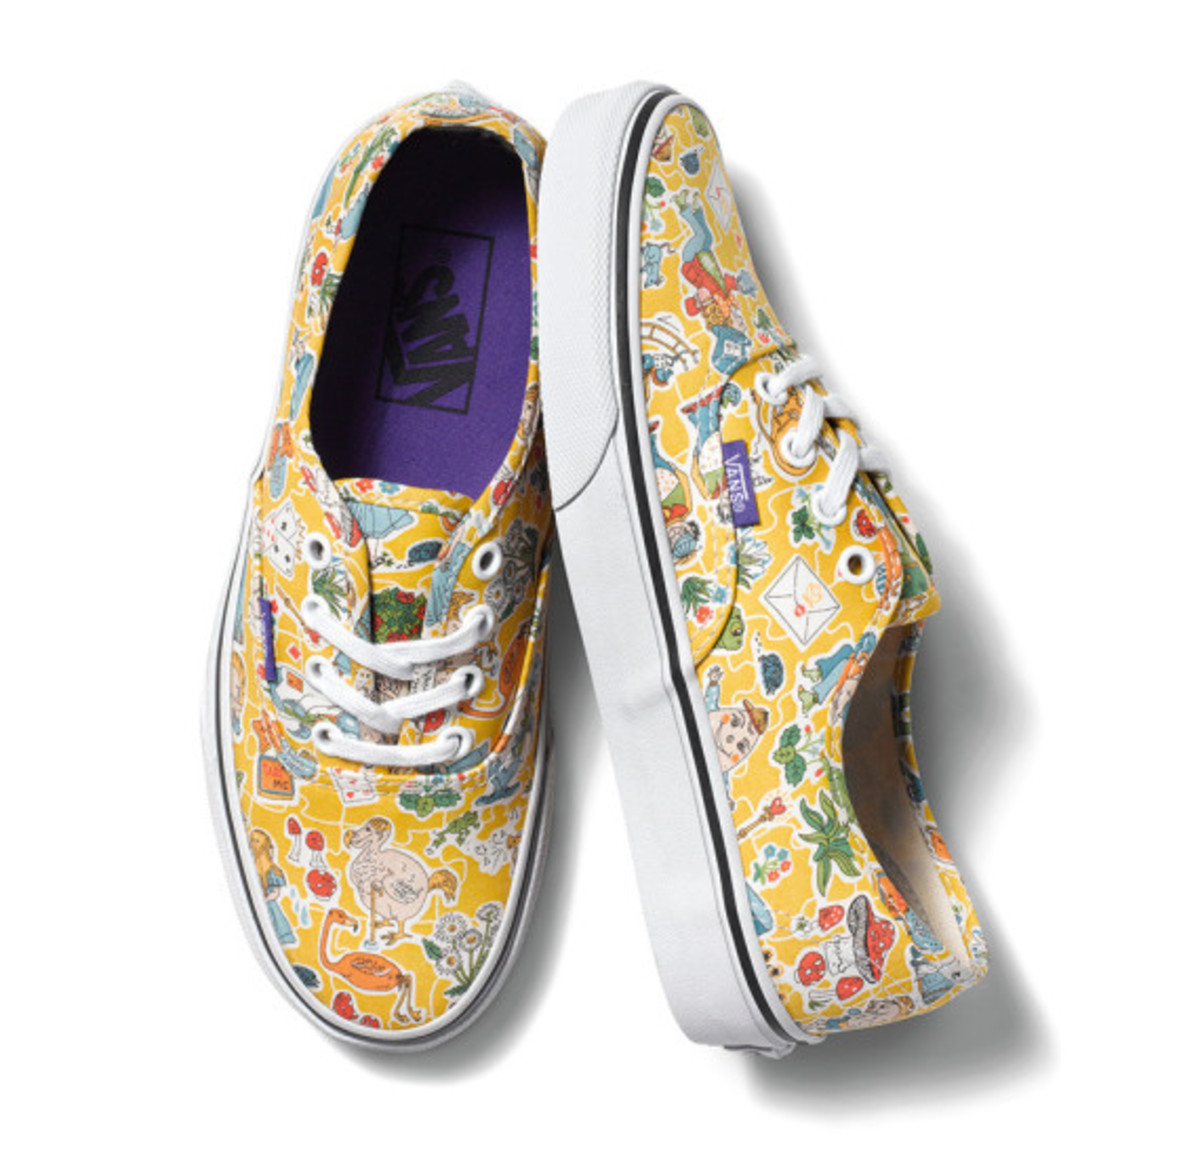 vans-liberty-art-fabrics-collection-for-women-05